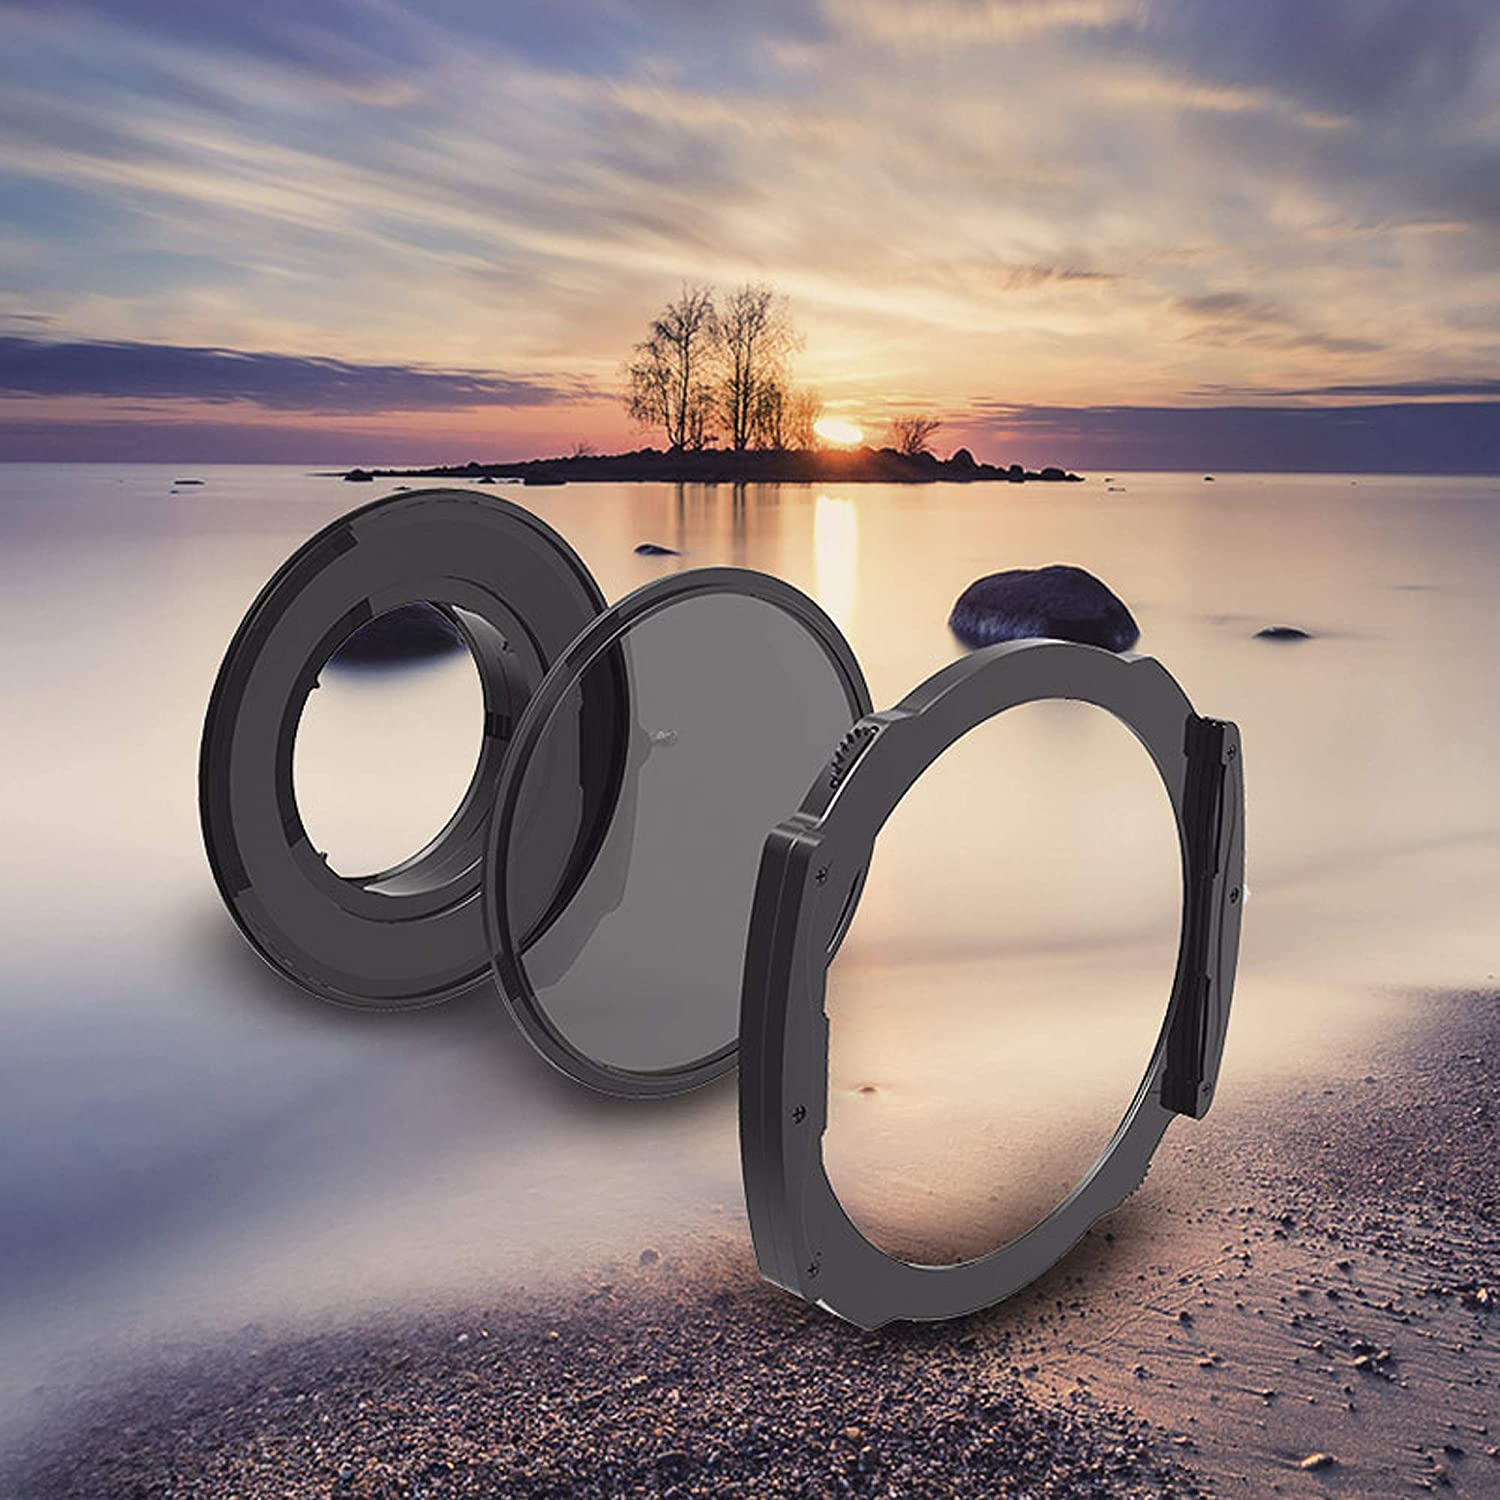 filters for landscape photography 3 image